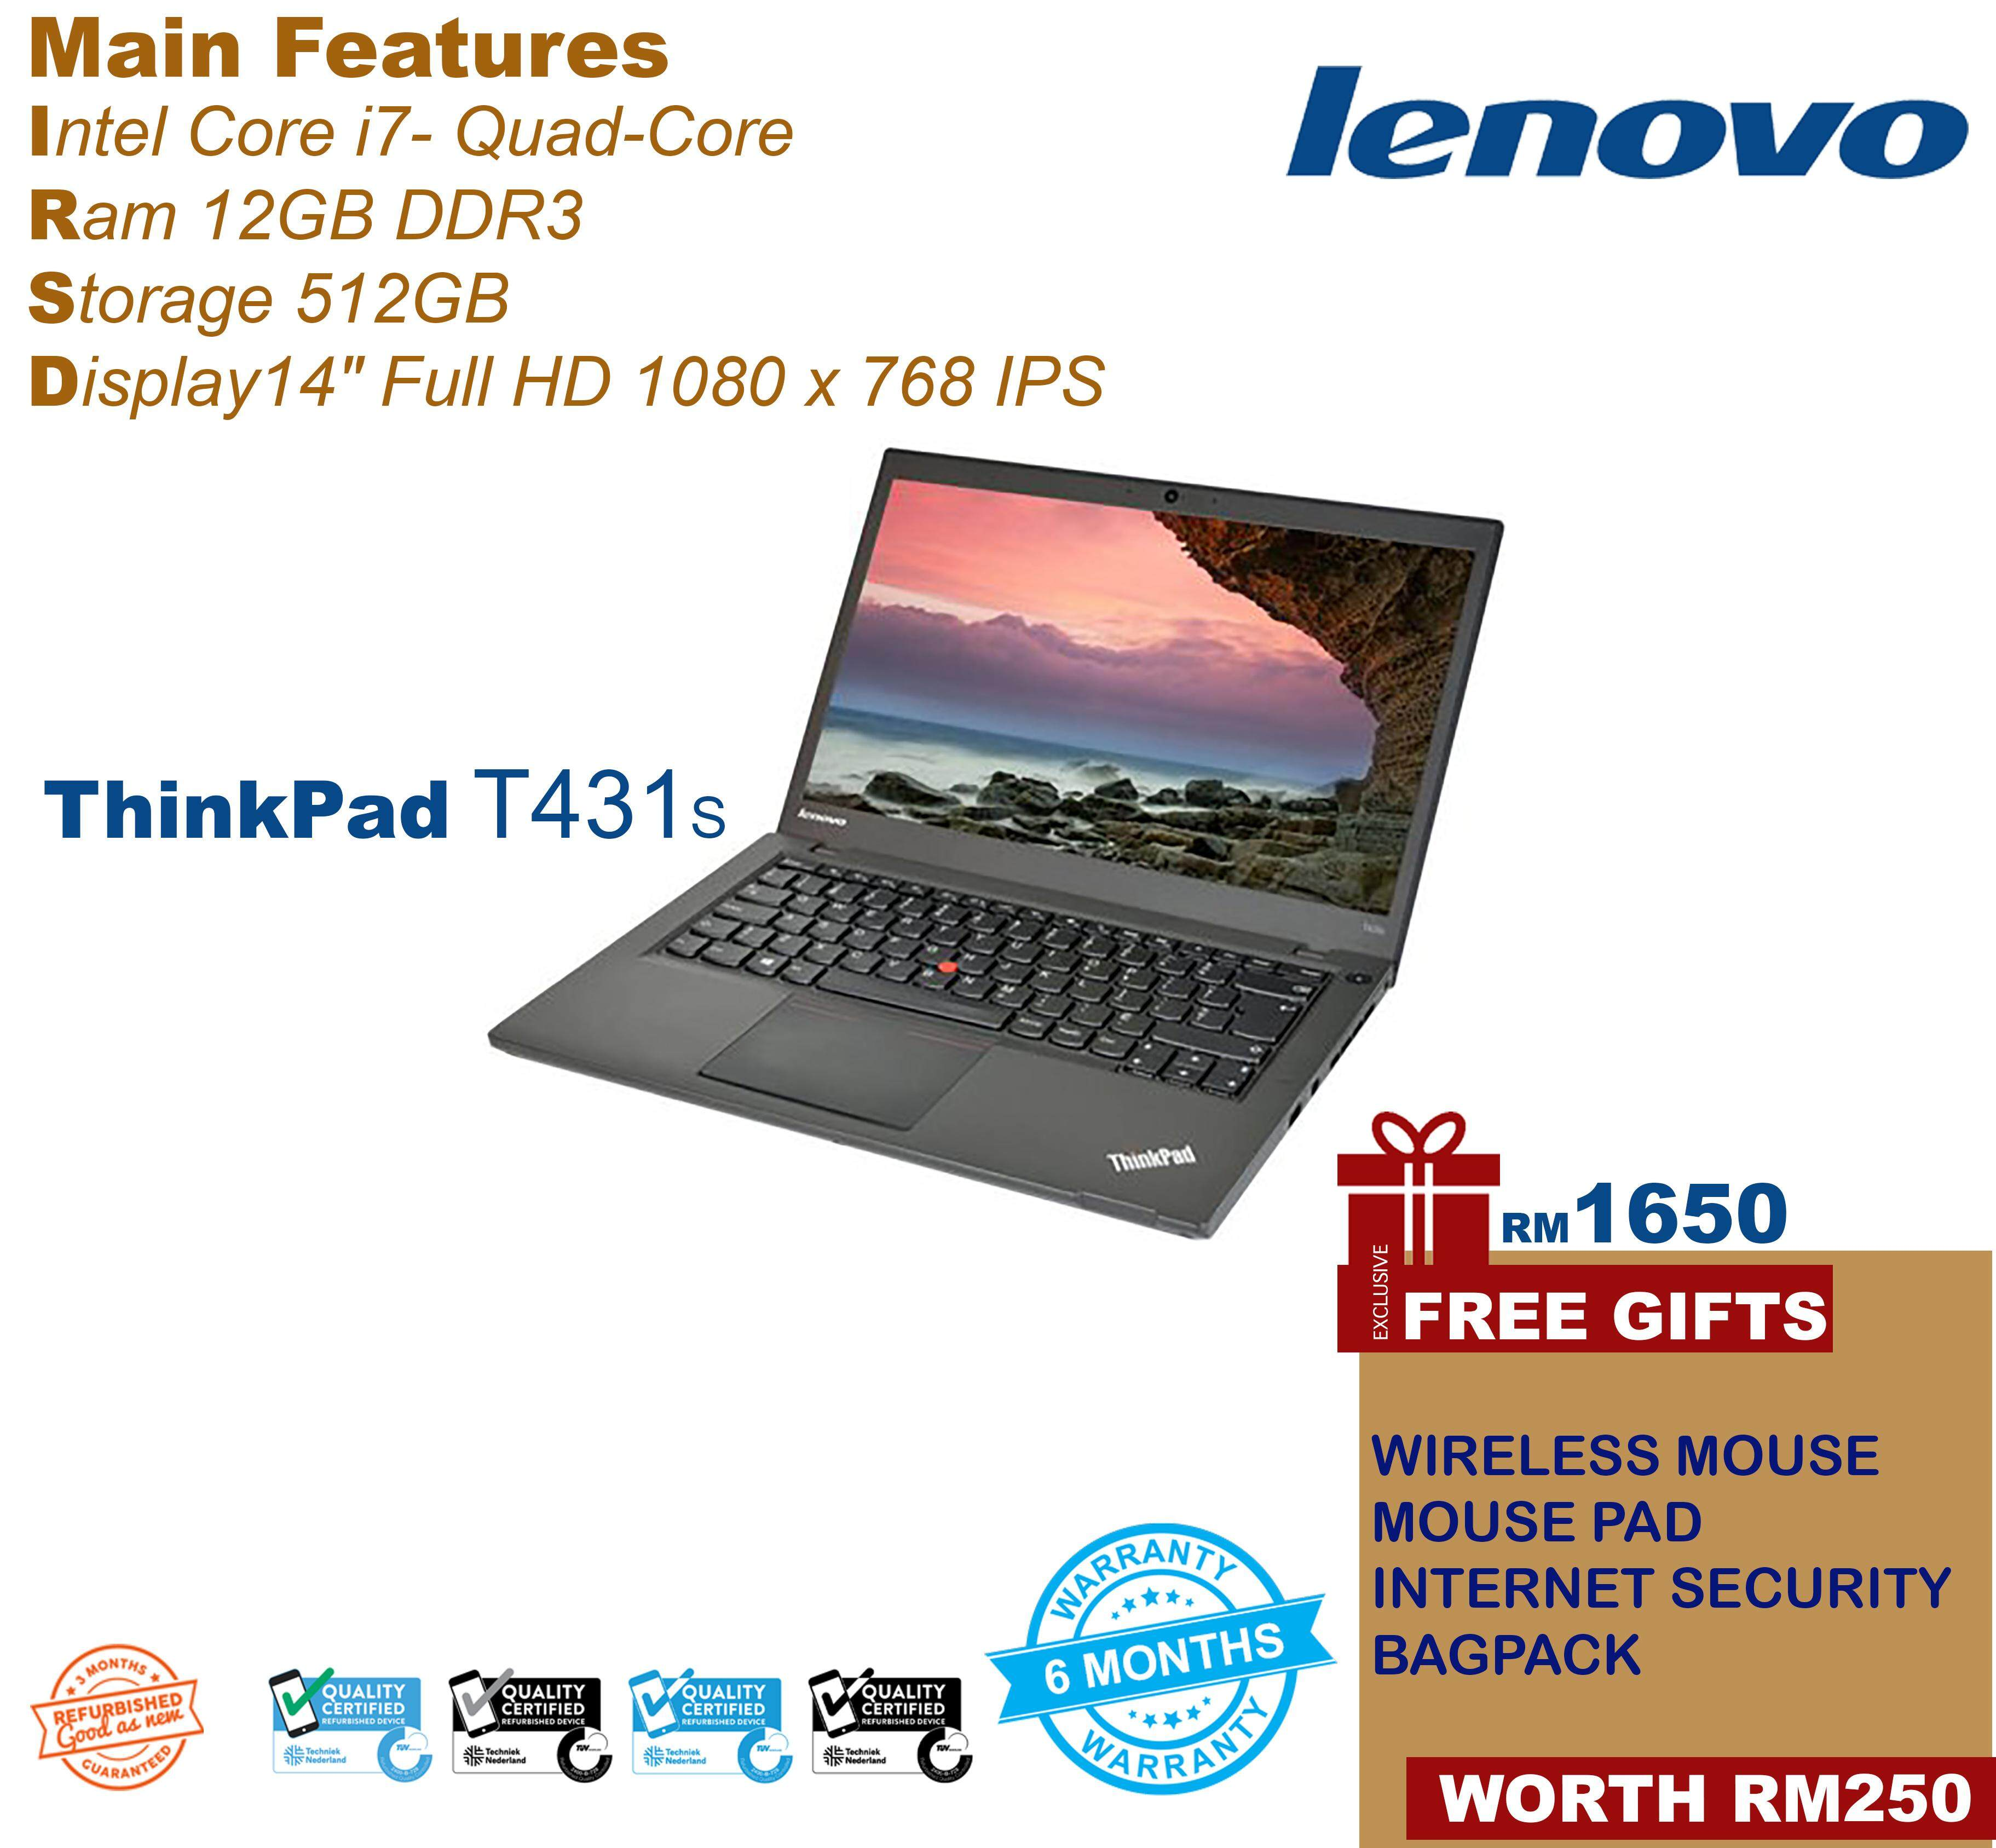 Lenovo Thinkapd T431s Slim Laptop [Core-i7 | 12GB Ram | 512GB SSD] Super Fast Suitable for Gaming with graphics card Win10 Pro Malaysia